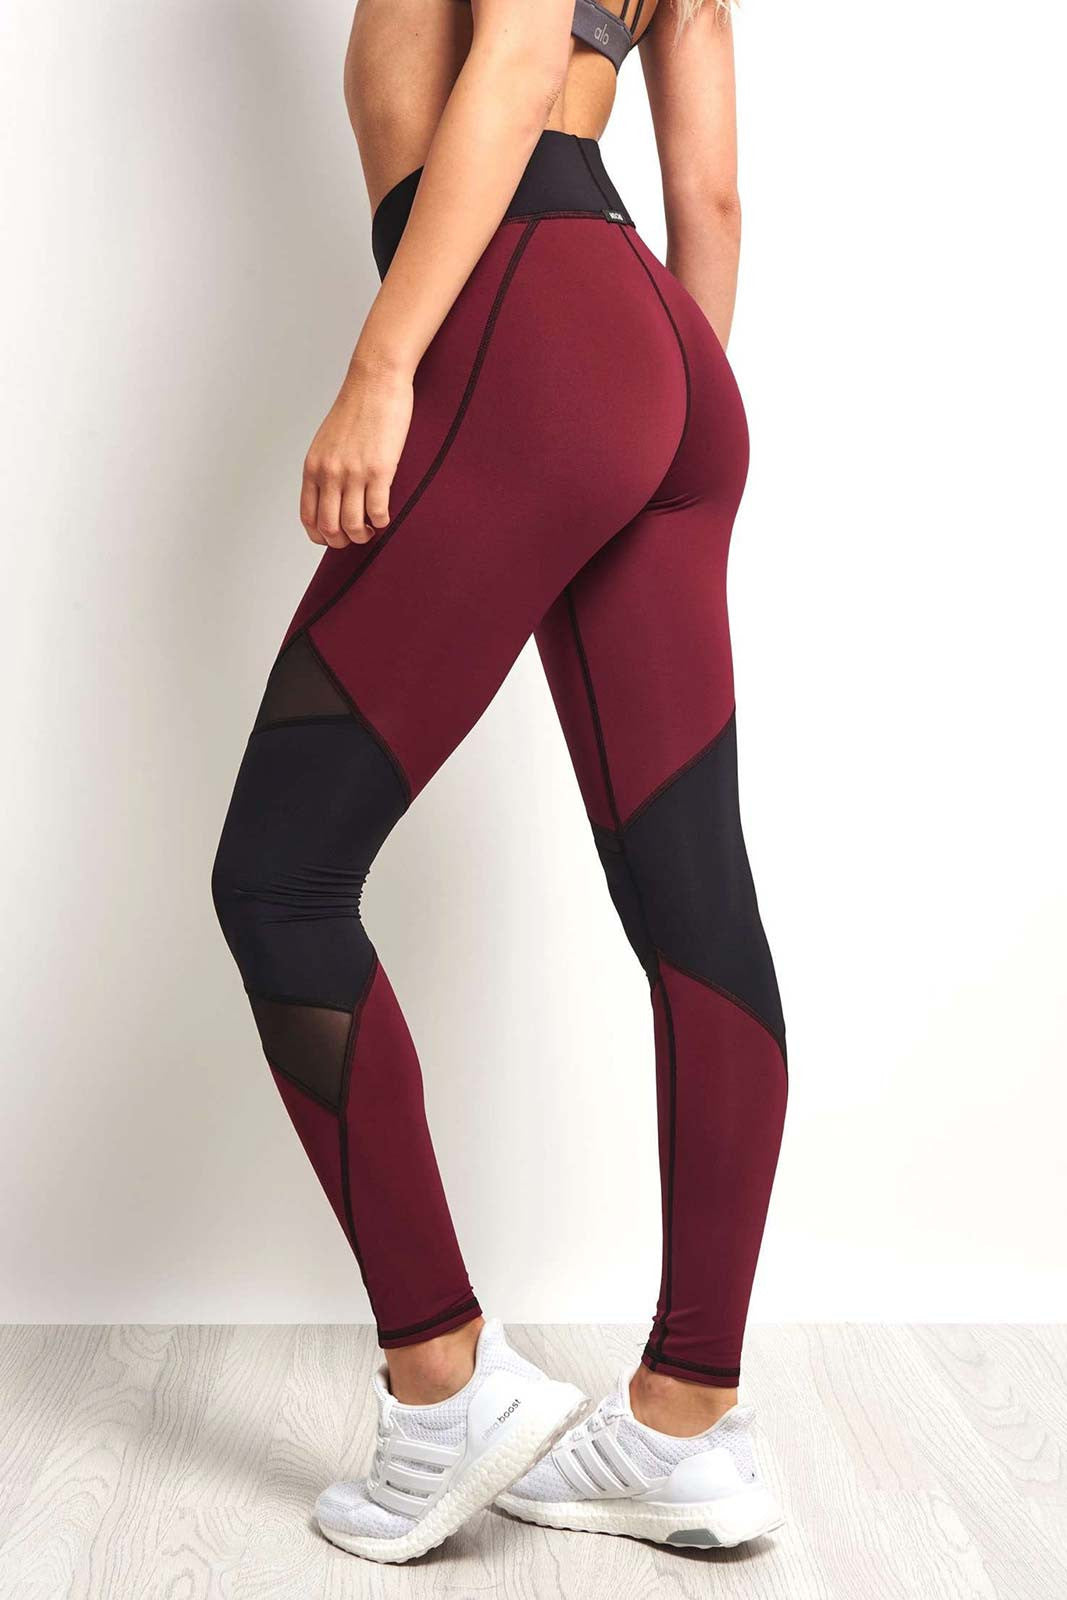 Michi Pulsar Legging - Shiraz image 2 - The Sports Edit